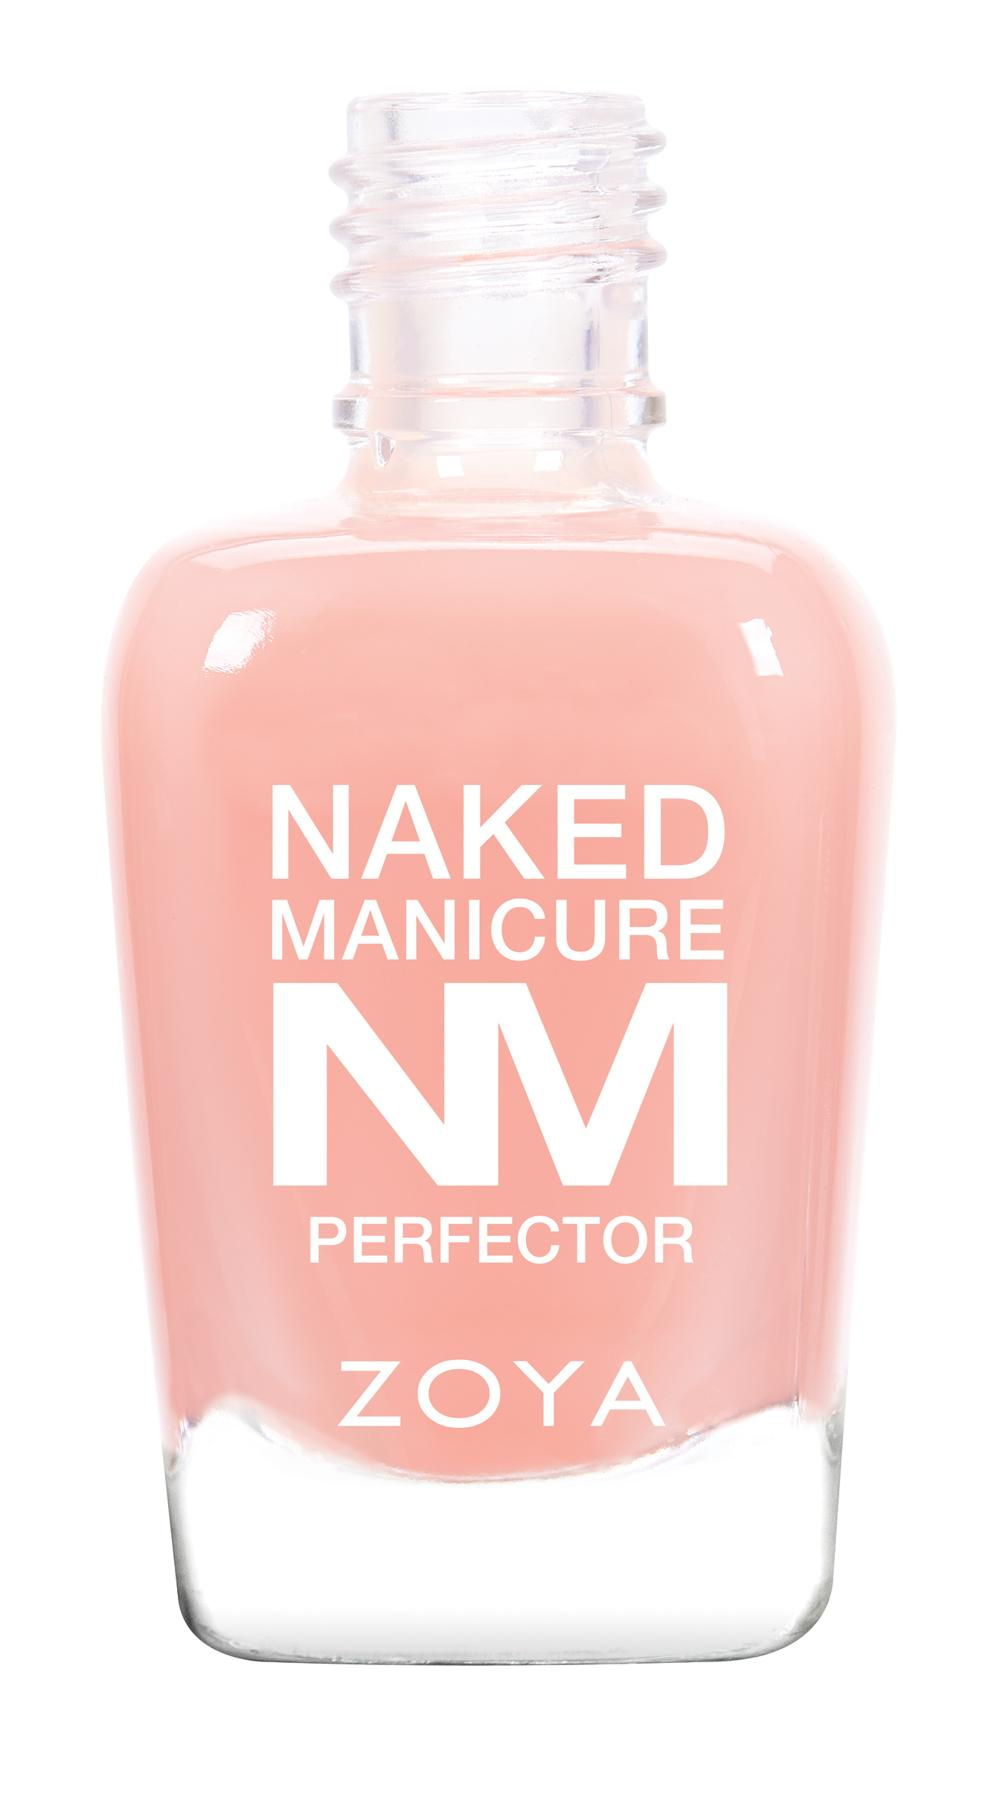 Zoya Naked Manicure Pink Perfector product impression